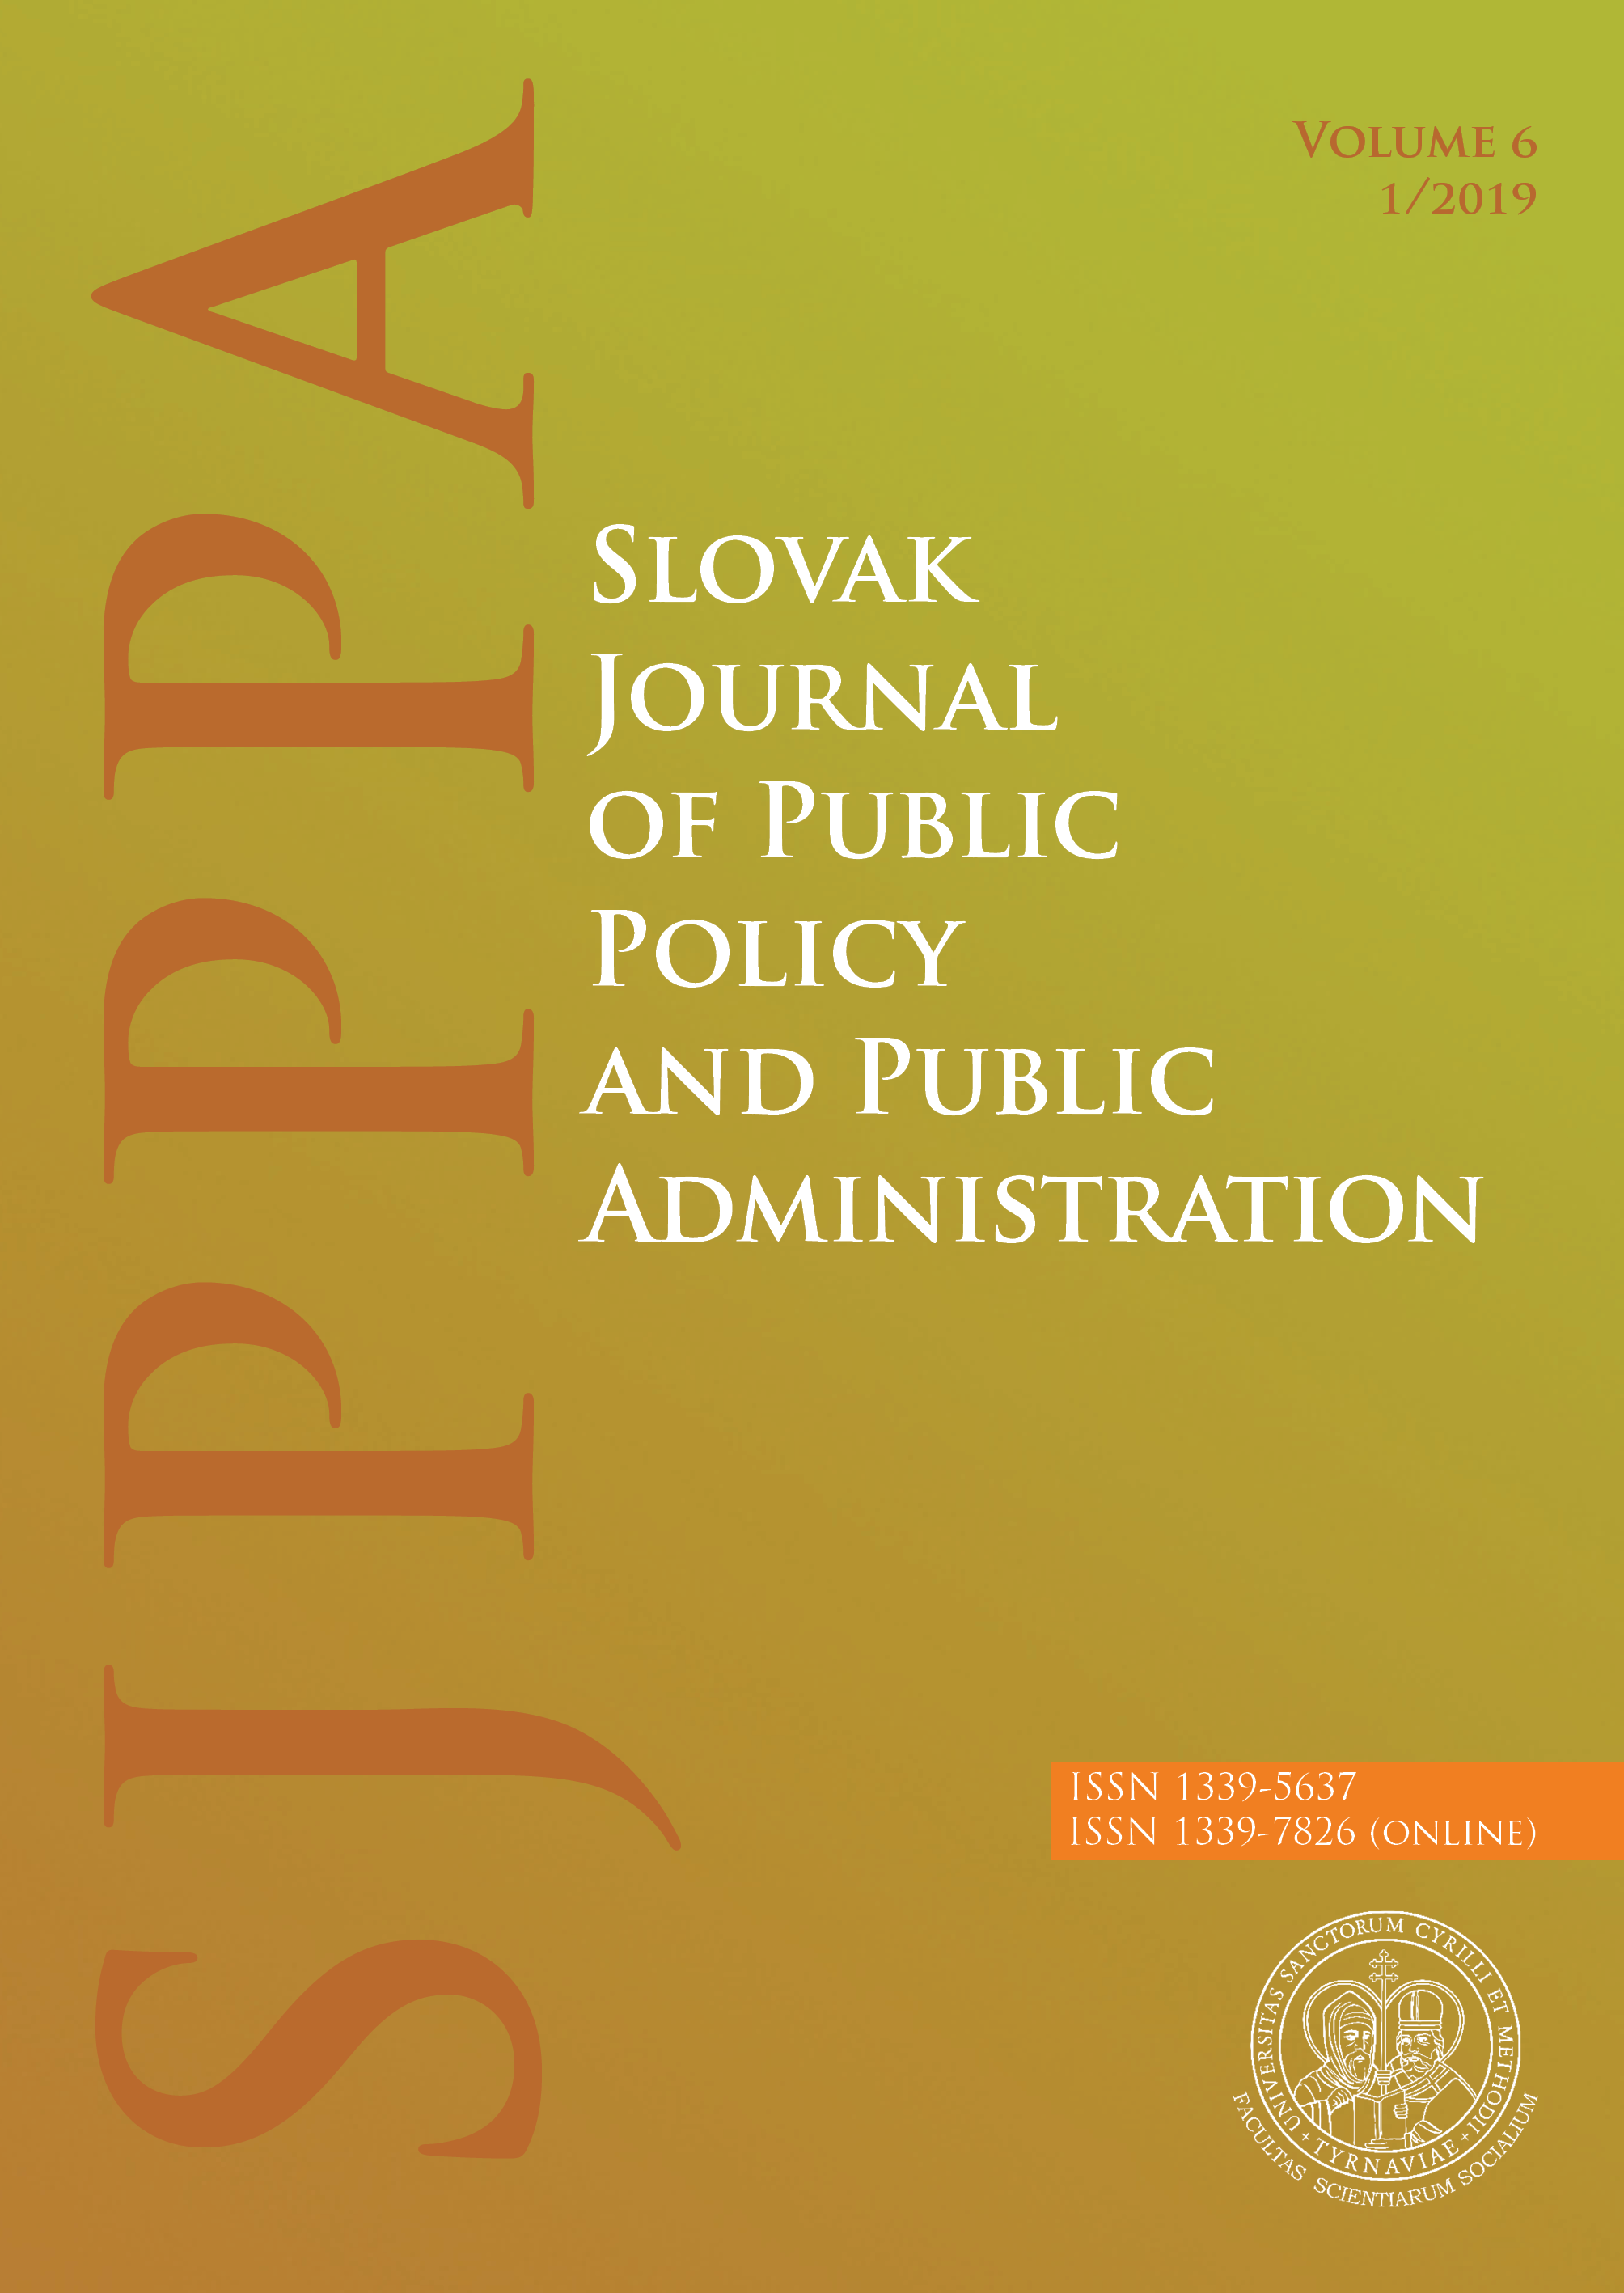 View Vol. 6 No. 1 (2019): Slovak Journal of Public Policy and Public Administration